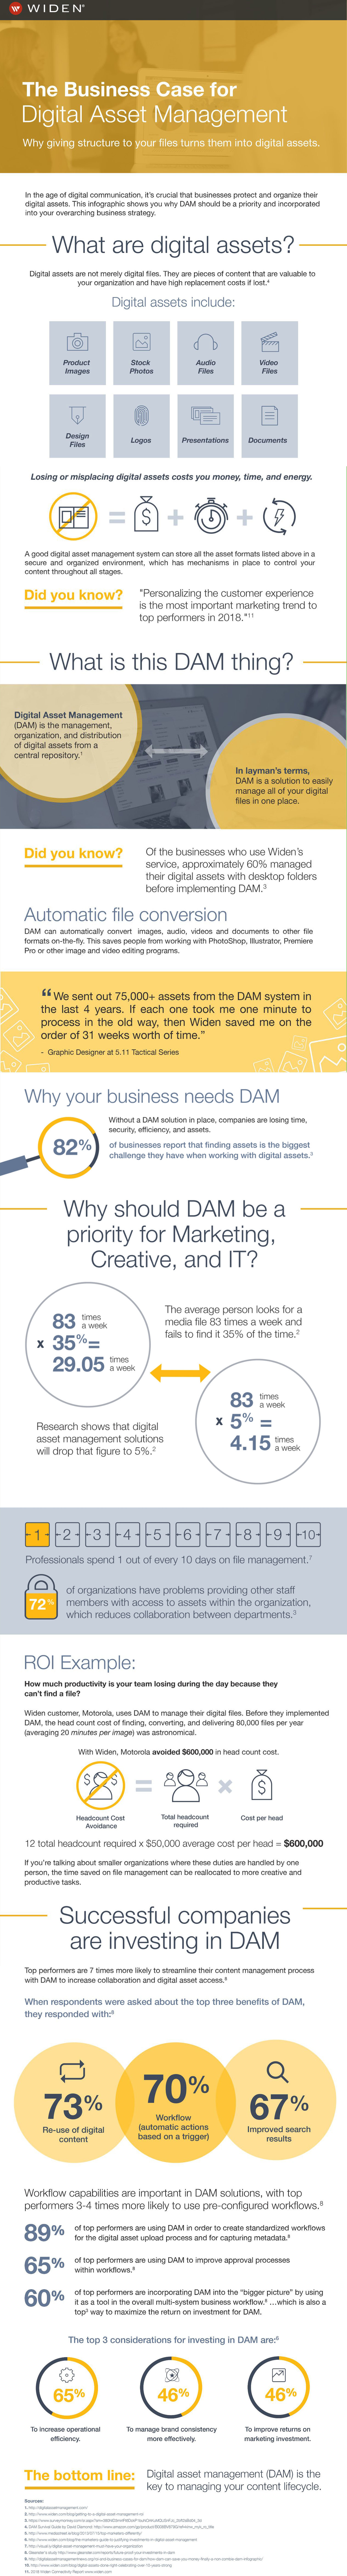 The Business Case For Digital Asset Management [Infographic]